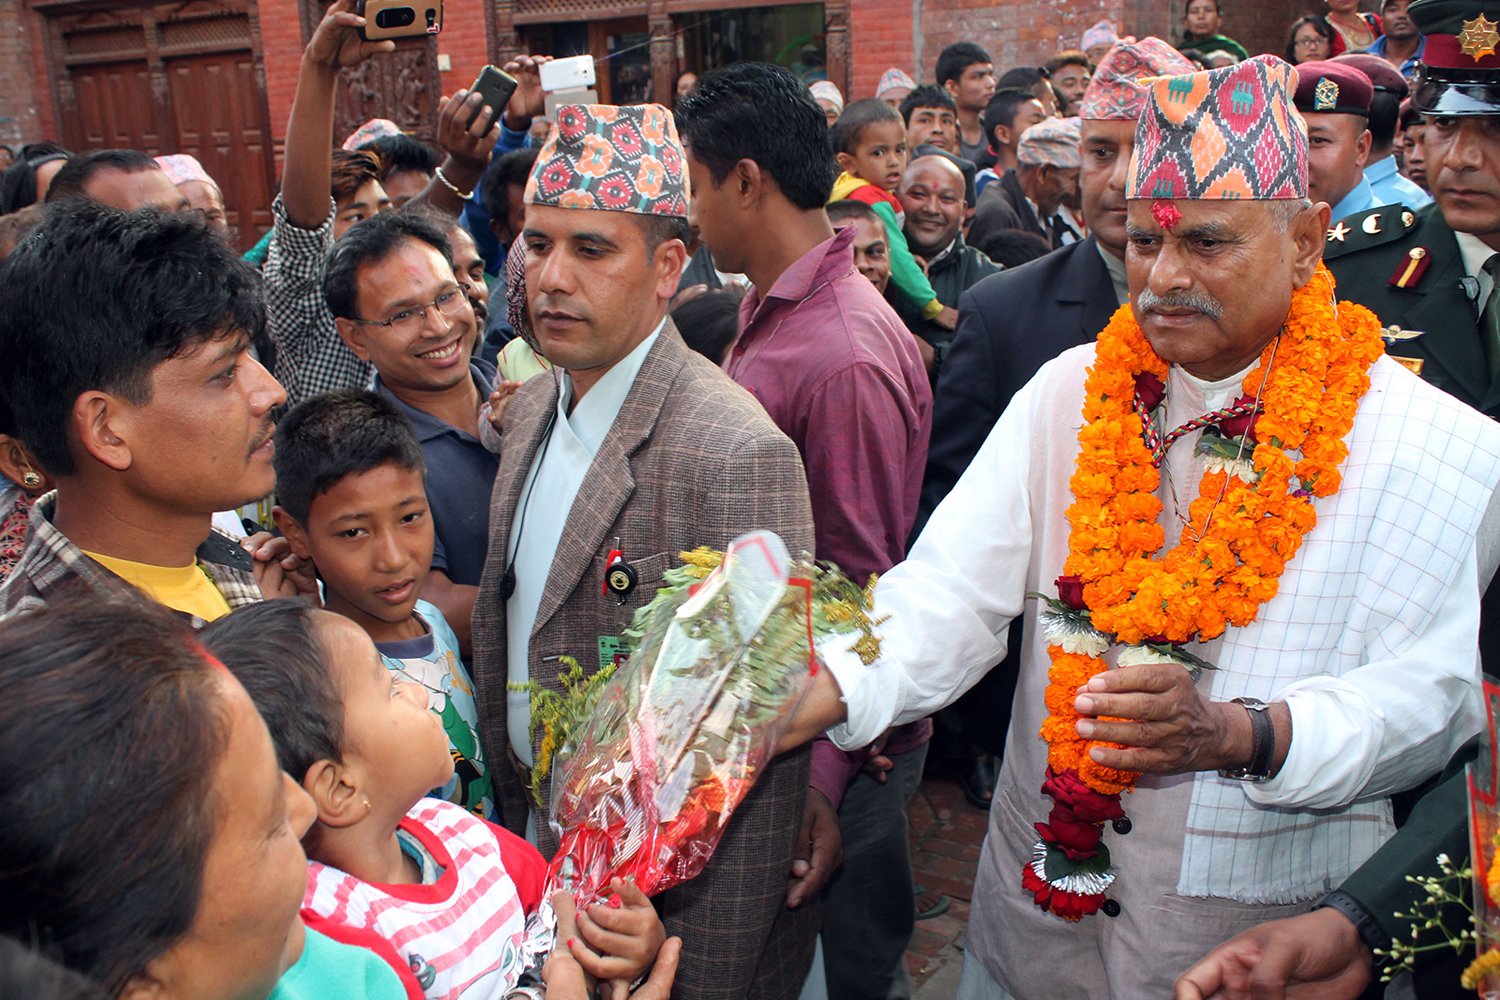 President Ram Baran Yadav meets local people after paying homage to Godness Navadurga on the occasion of Kojagrat Purnima in Bhaktapur  on Monday, October 26, 2015. Photo: RSS